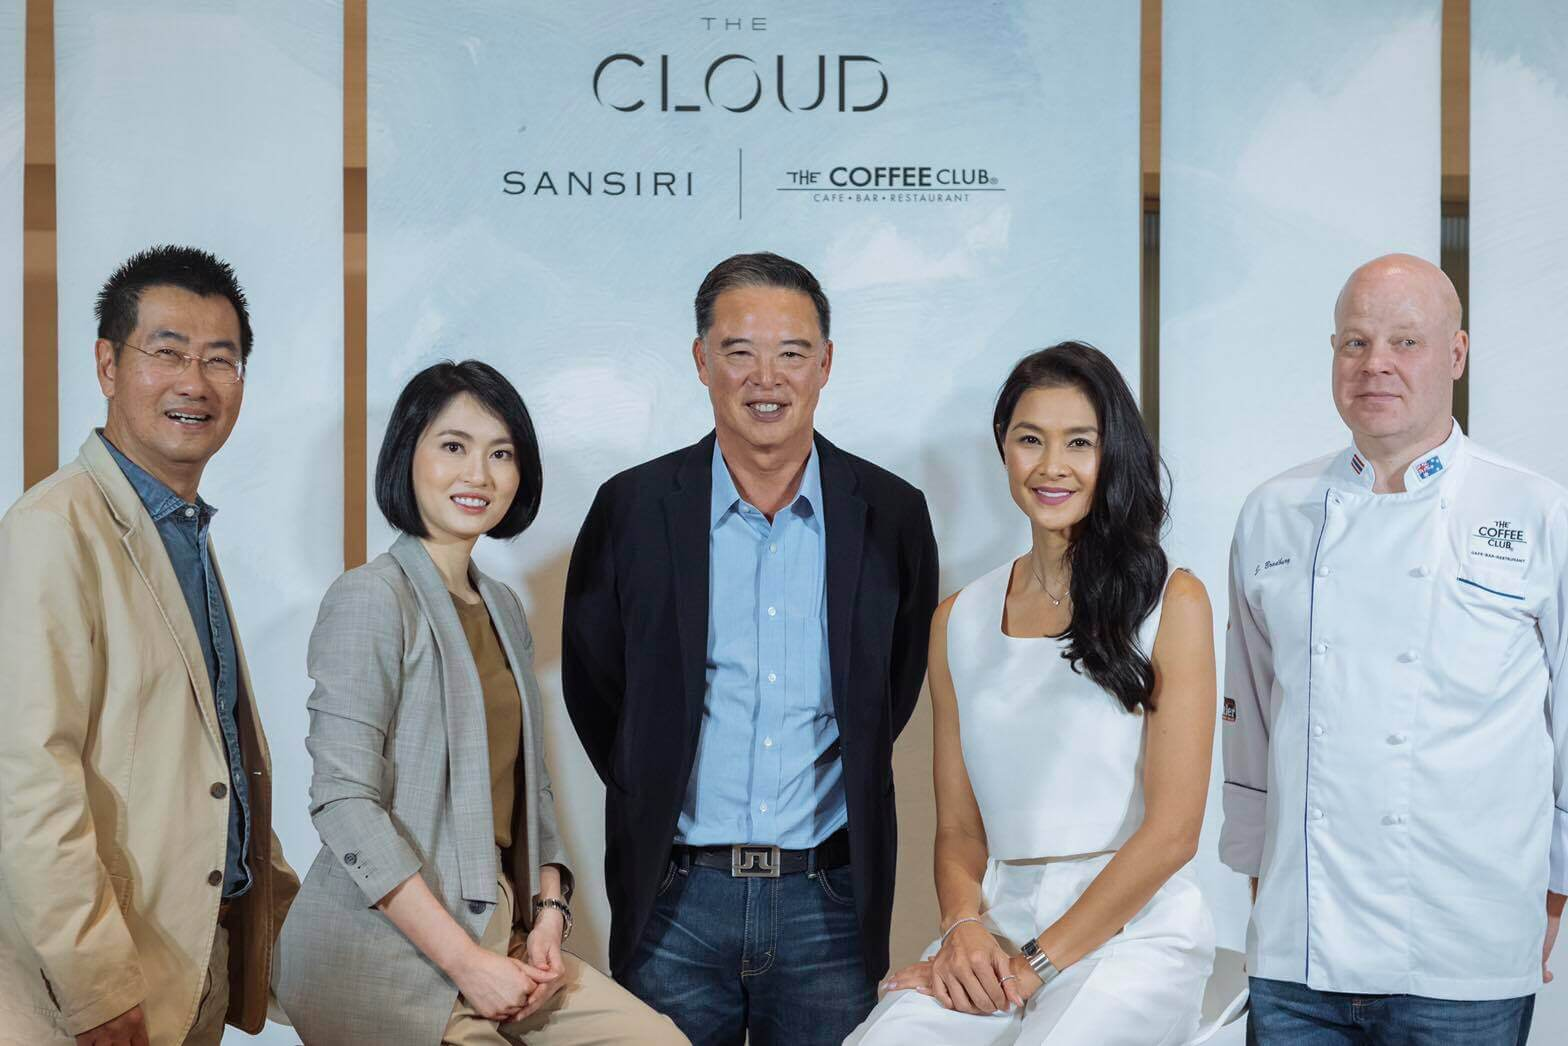 The Cloud Sansiri The Coffee Club